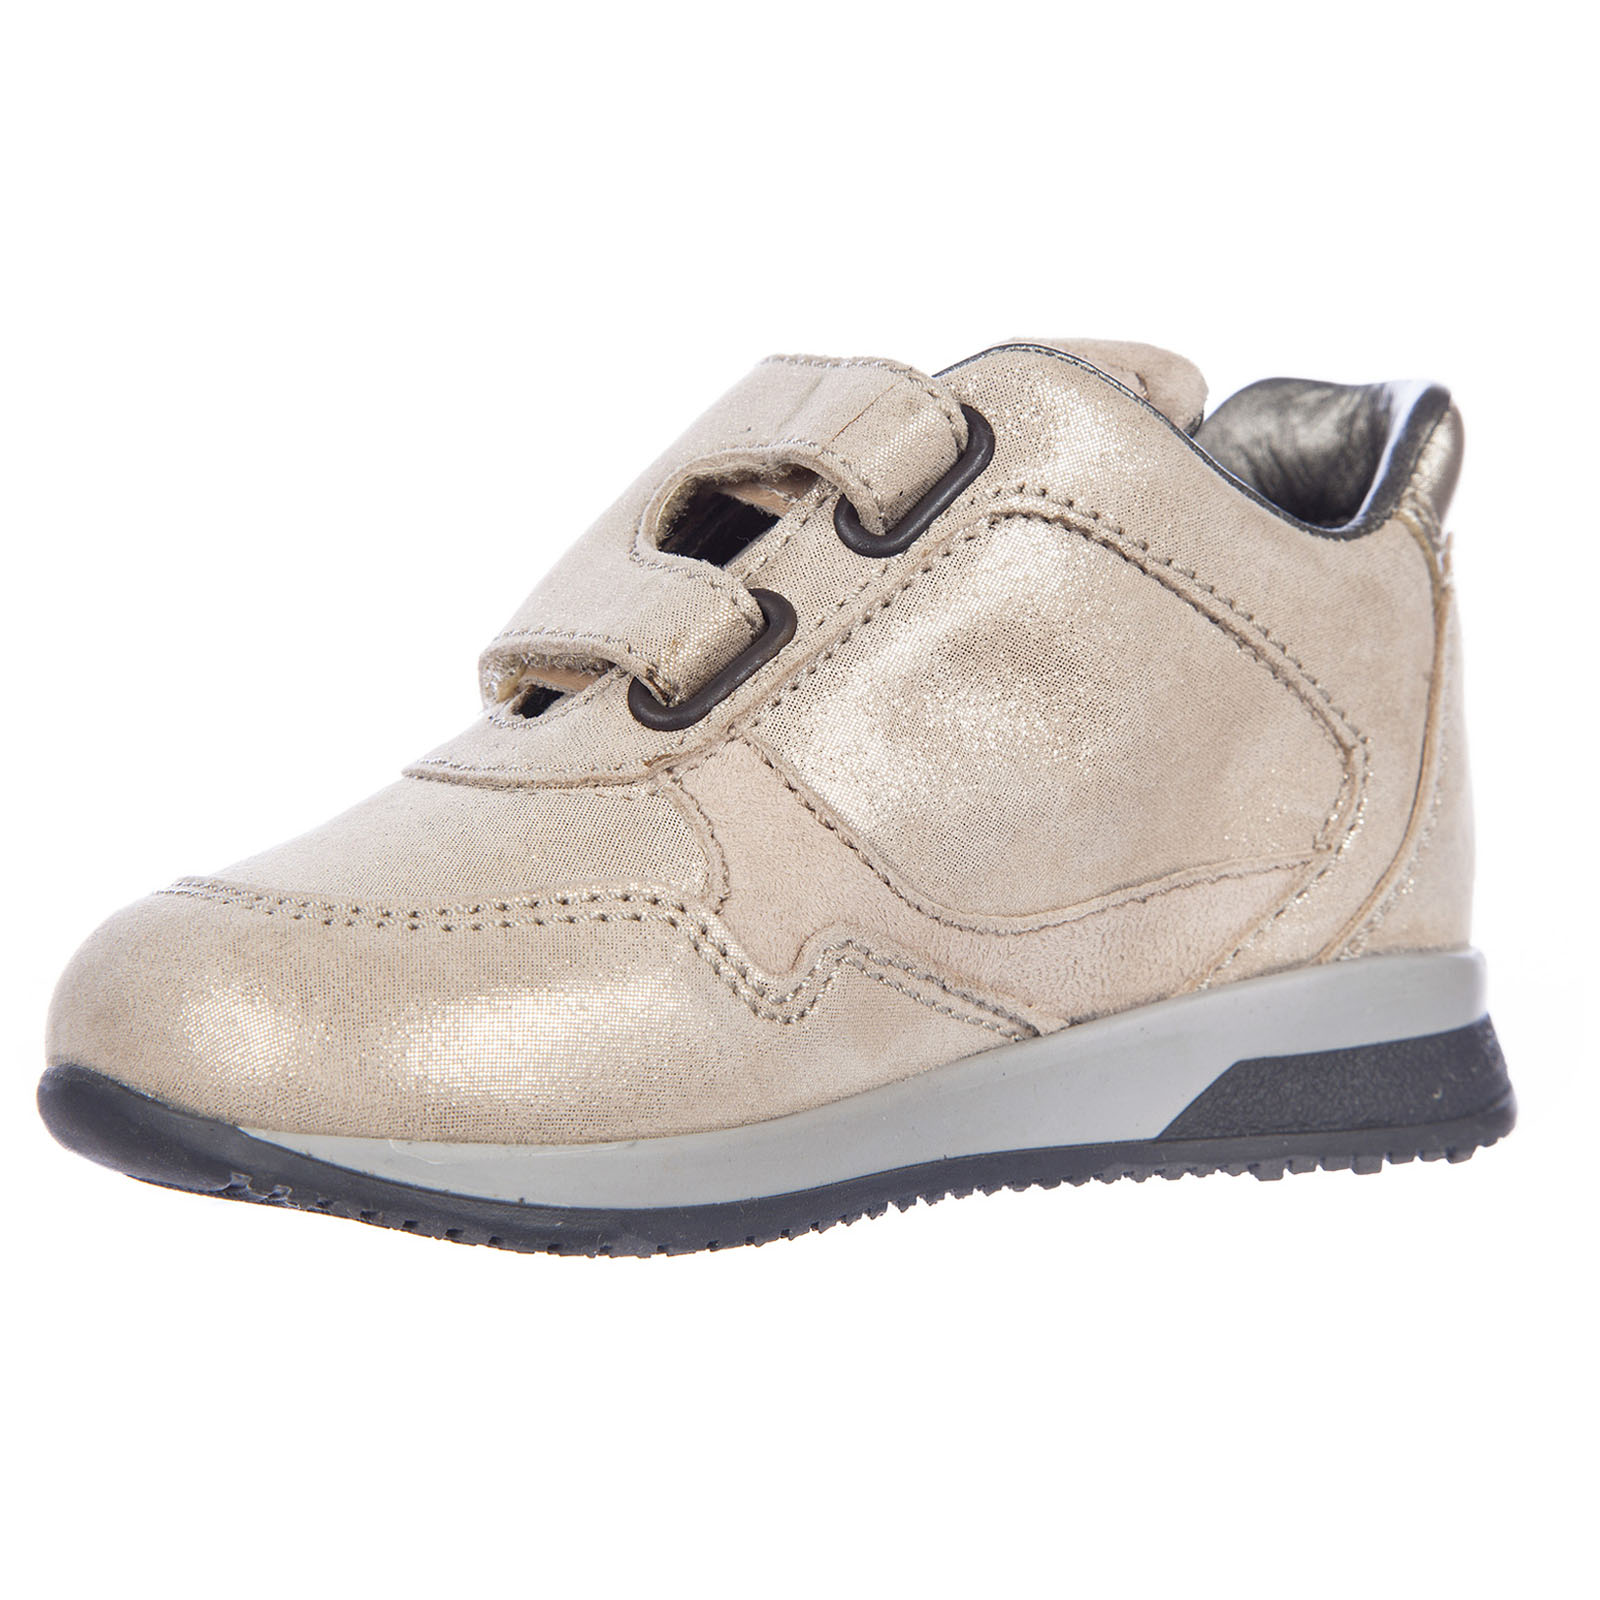 Boys shoes baby child sneakers leather elective